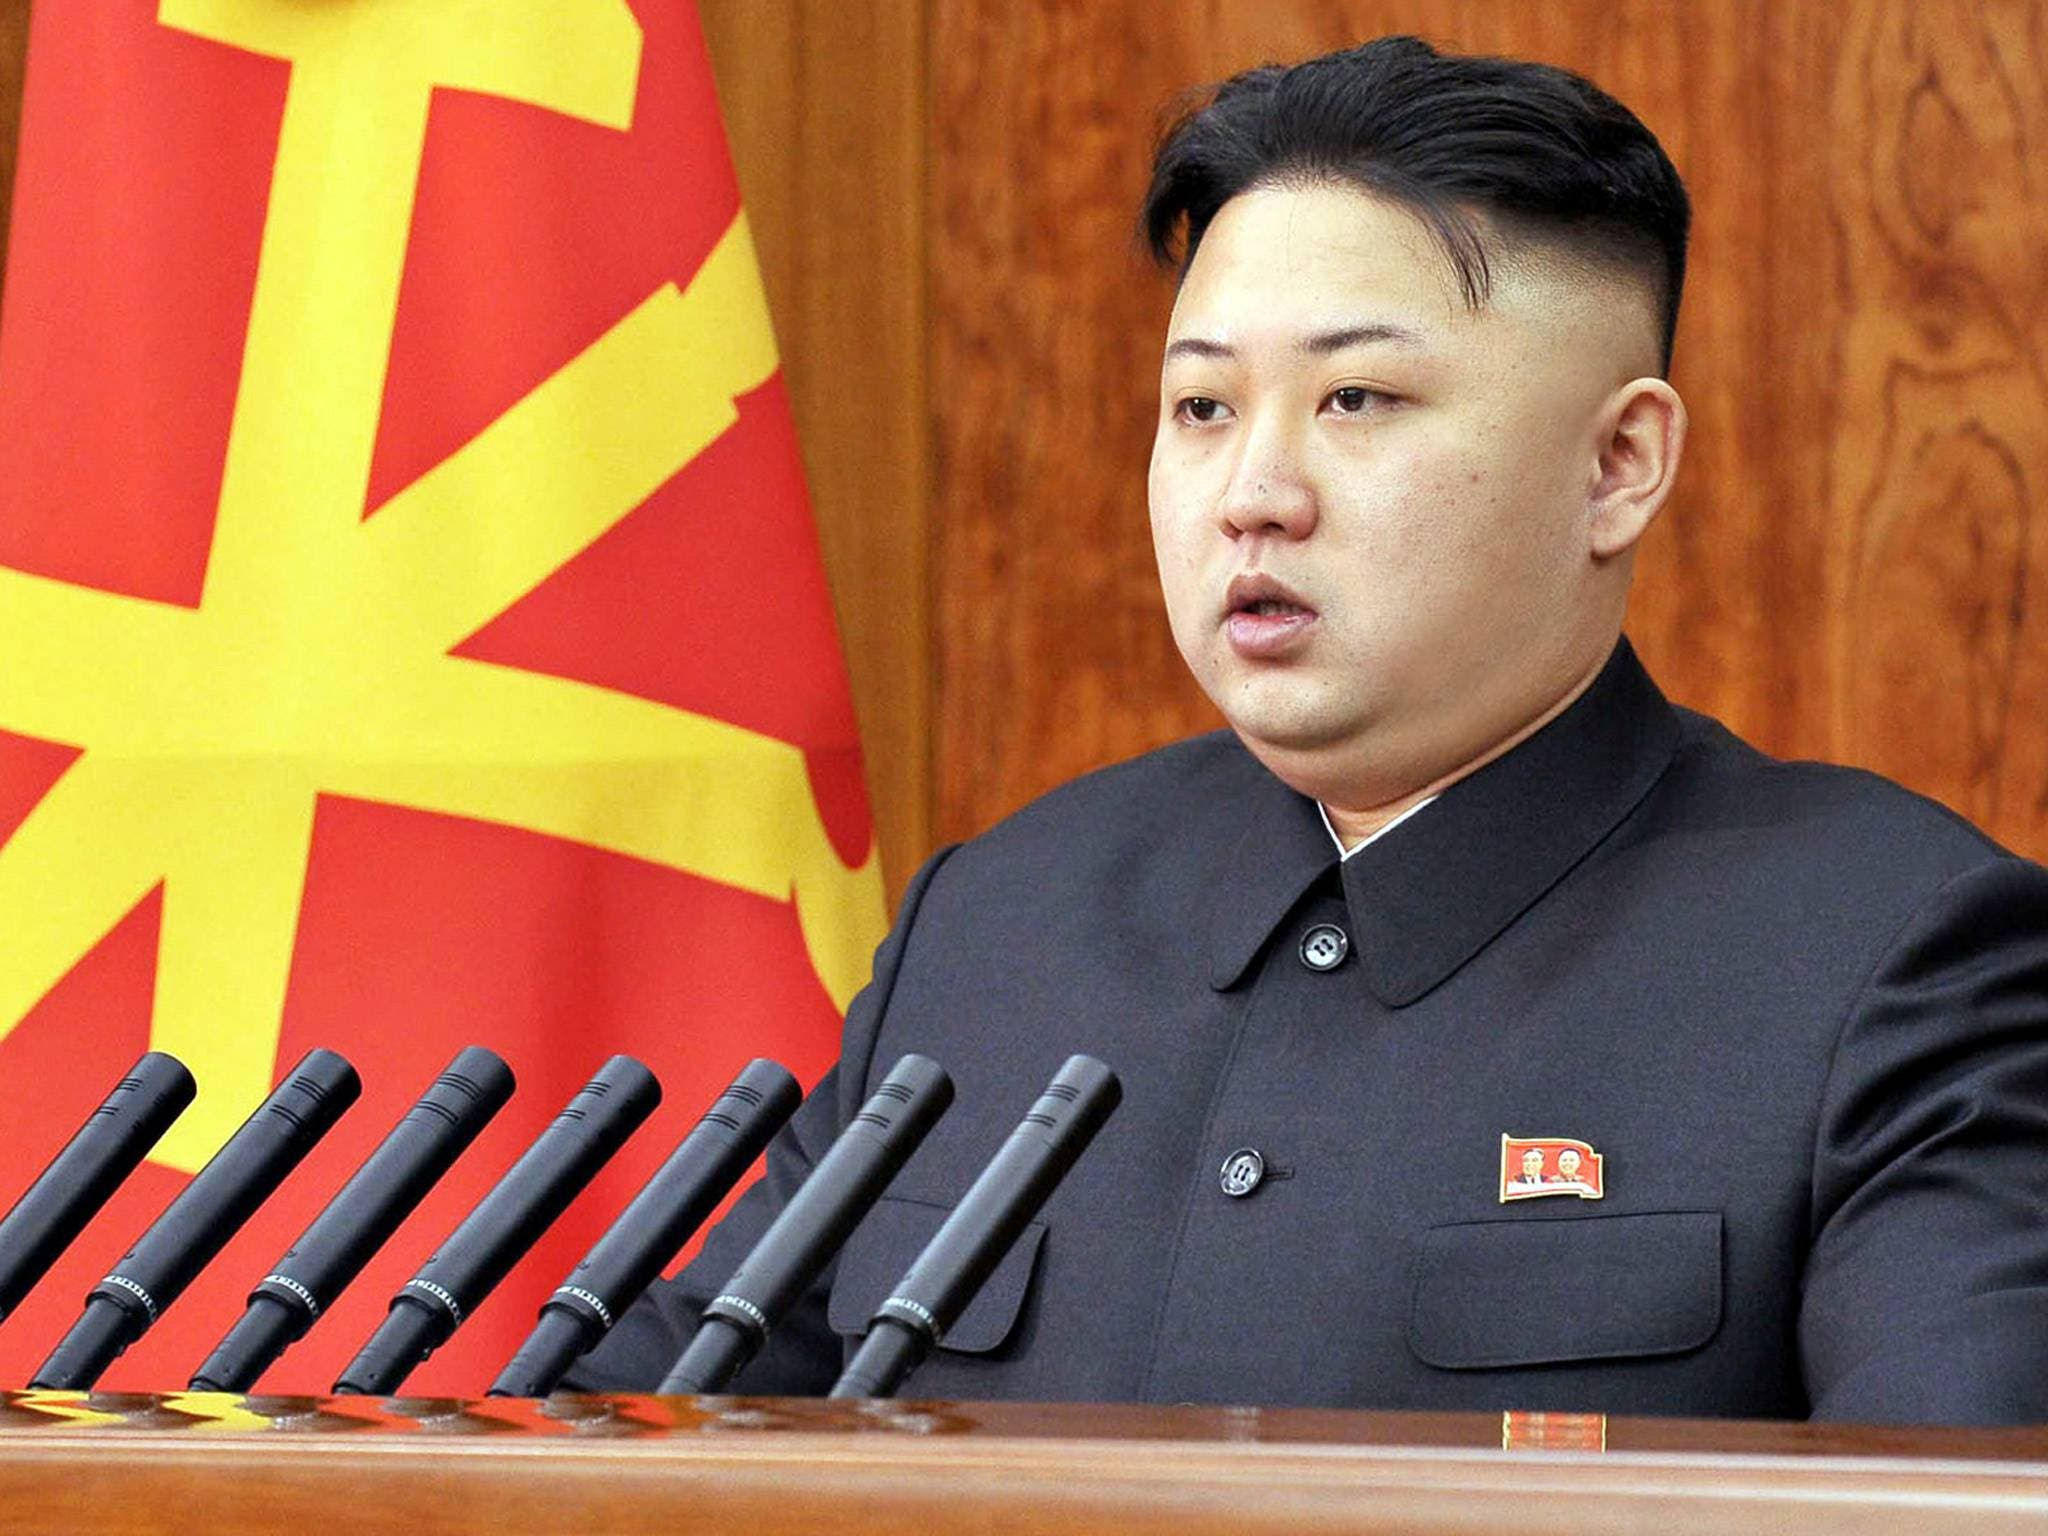 kim-jong-un-getty